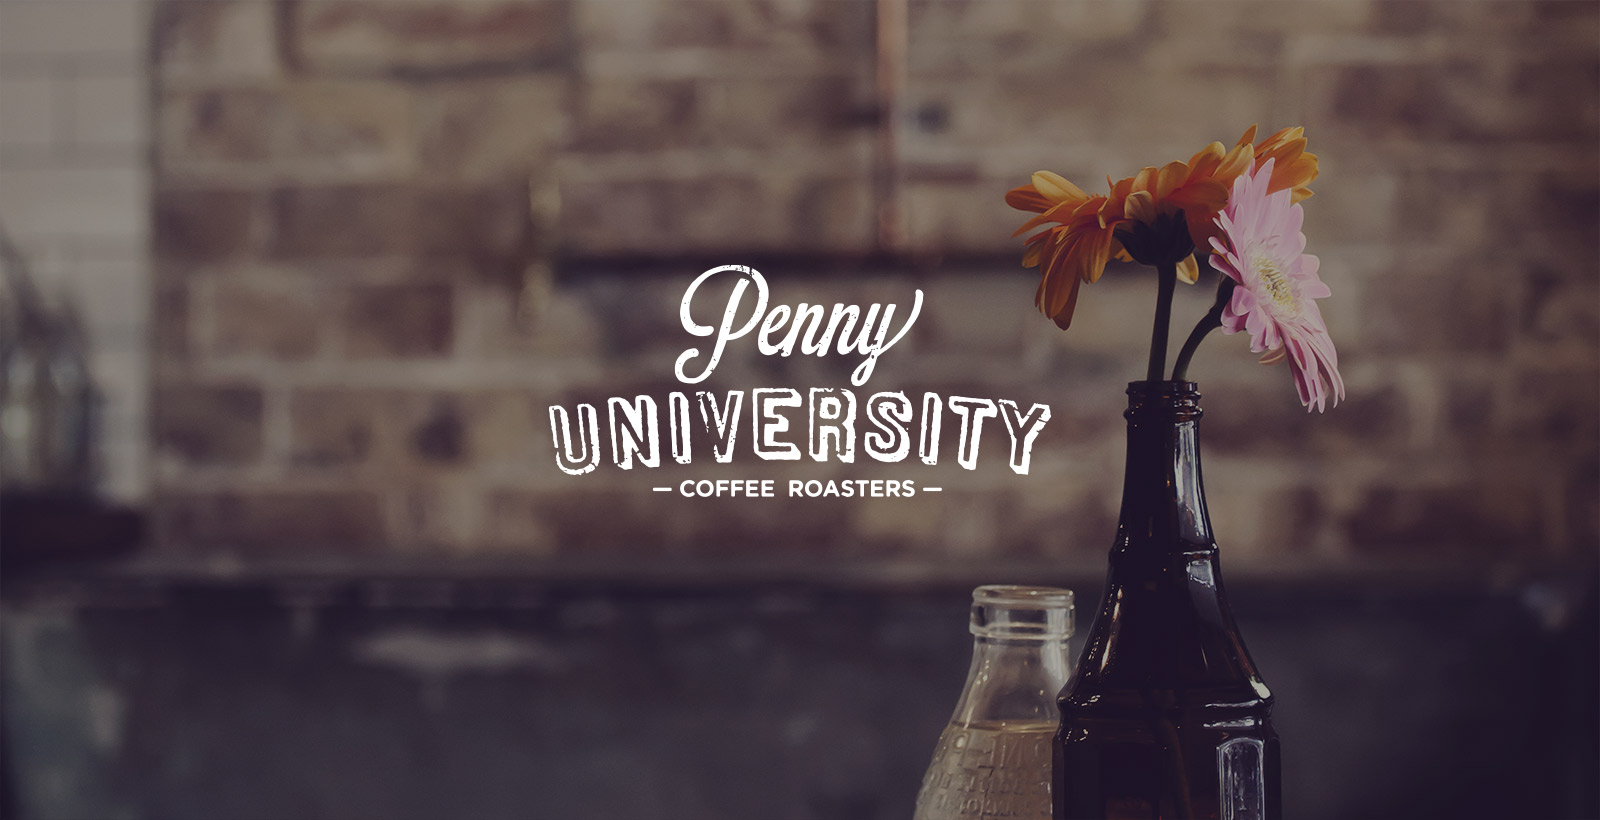 Penny University - Coffee Roasters